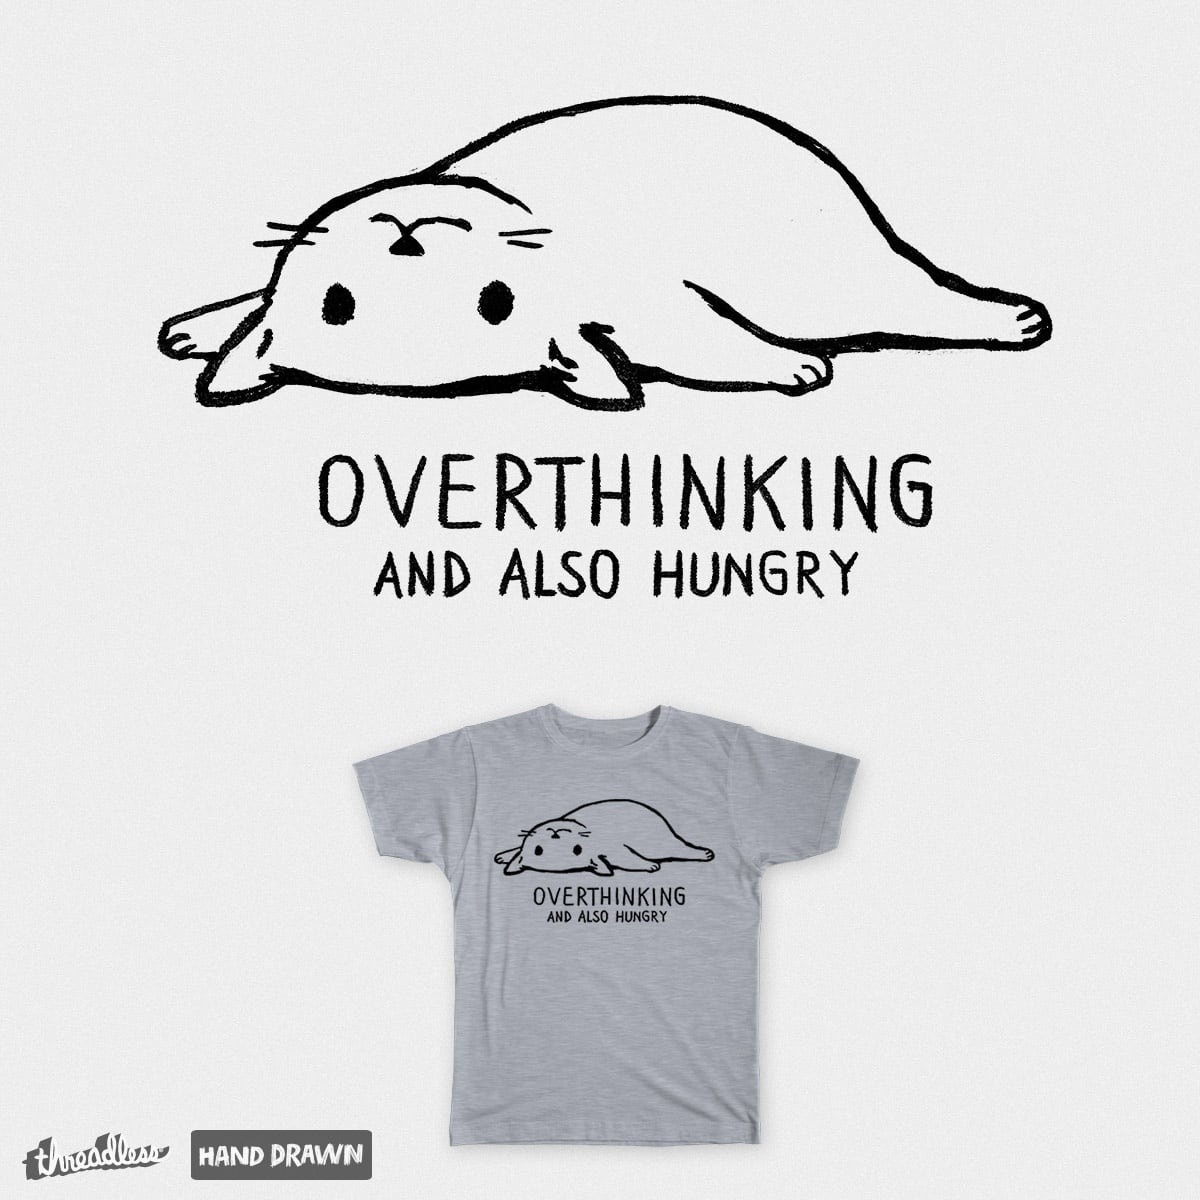 Overthinking and also Hungry by FoxShiver on Threadless